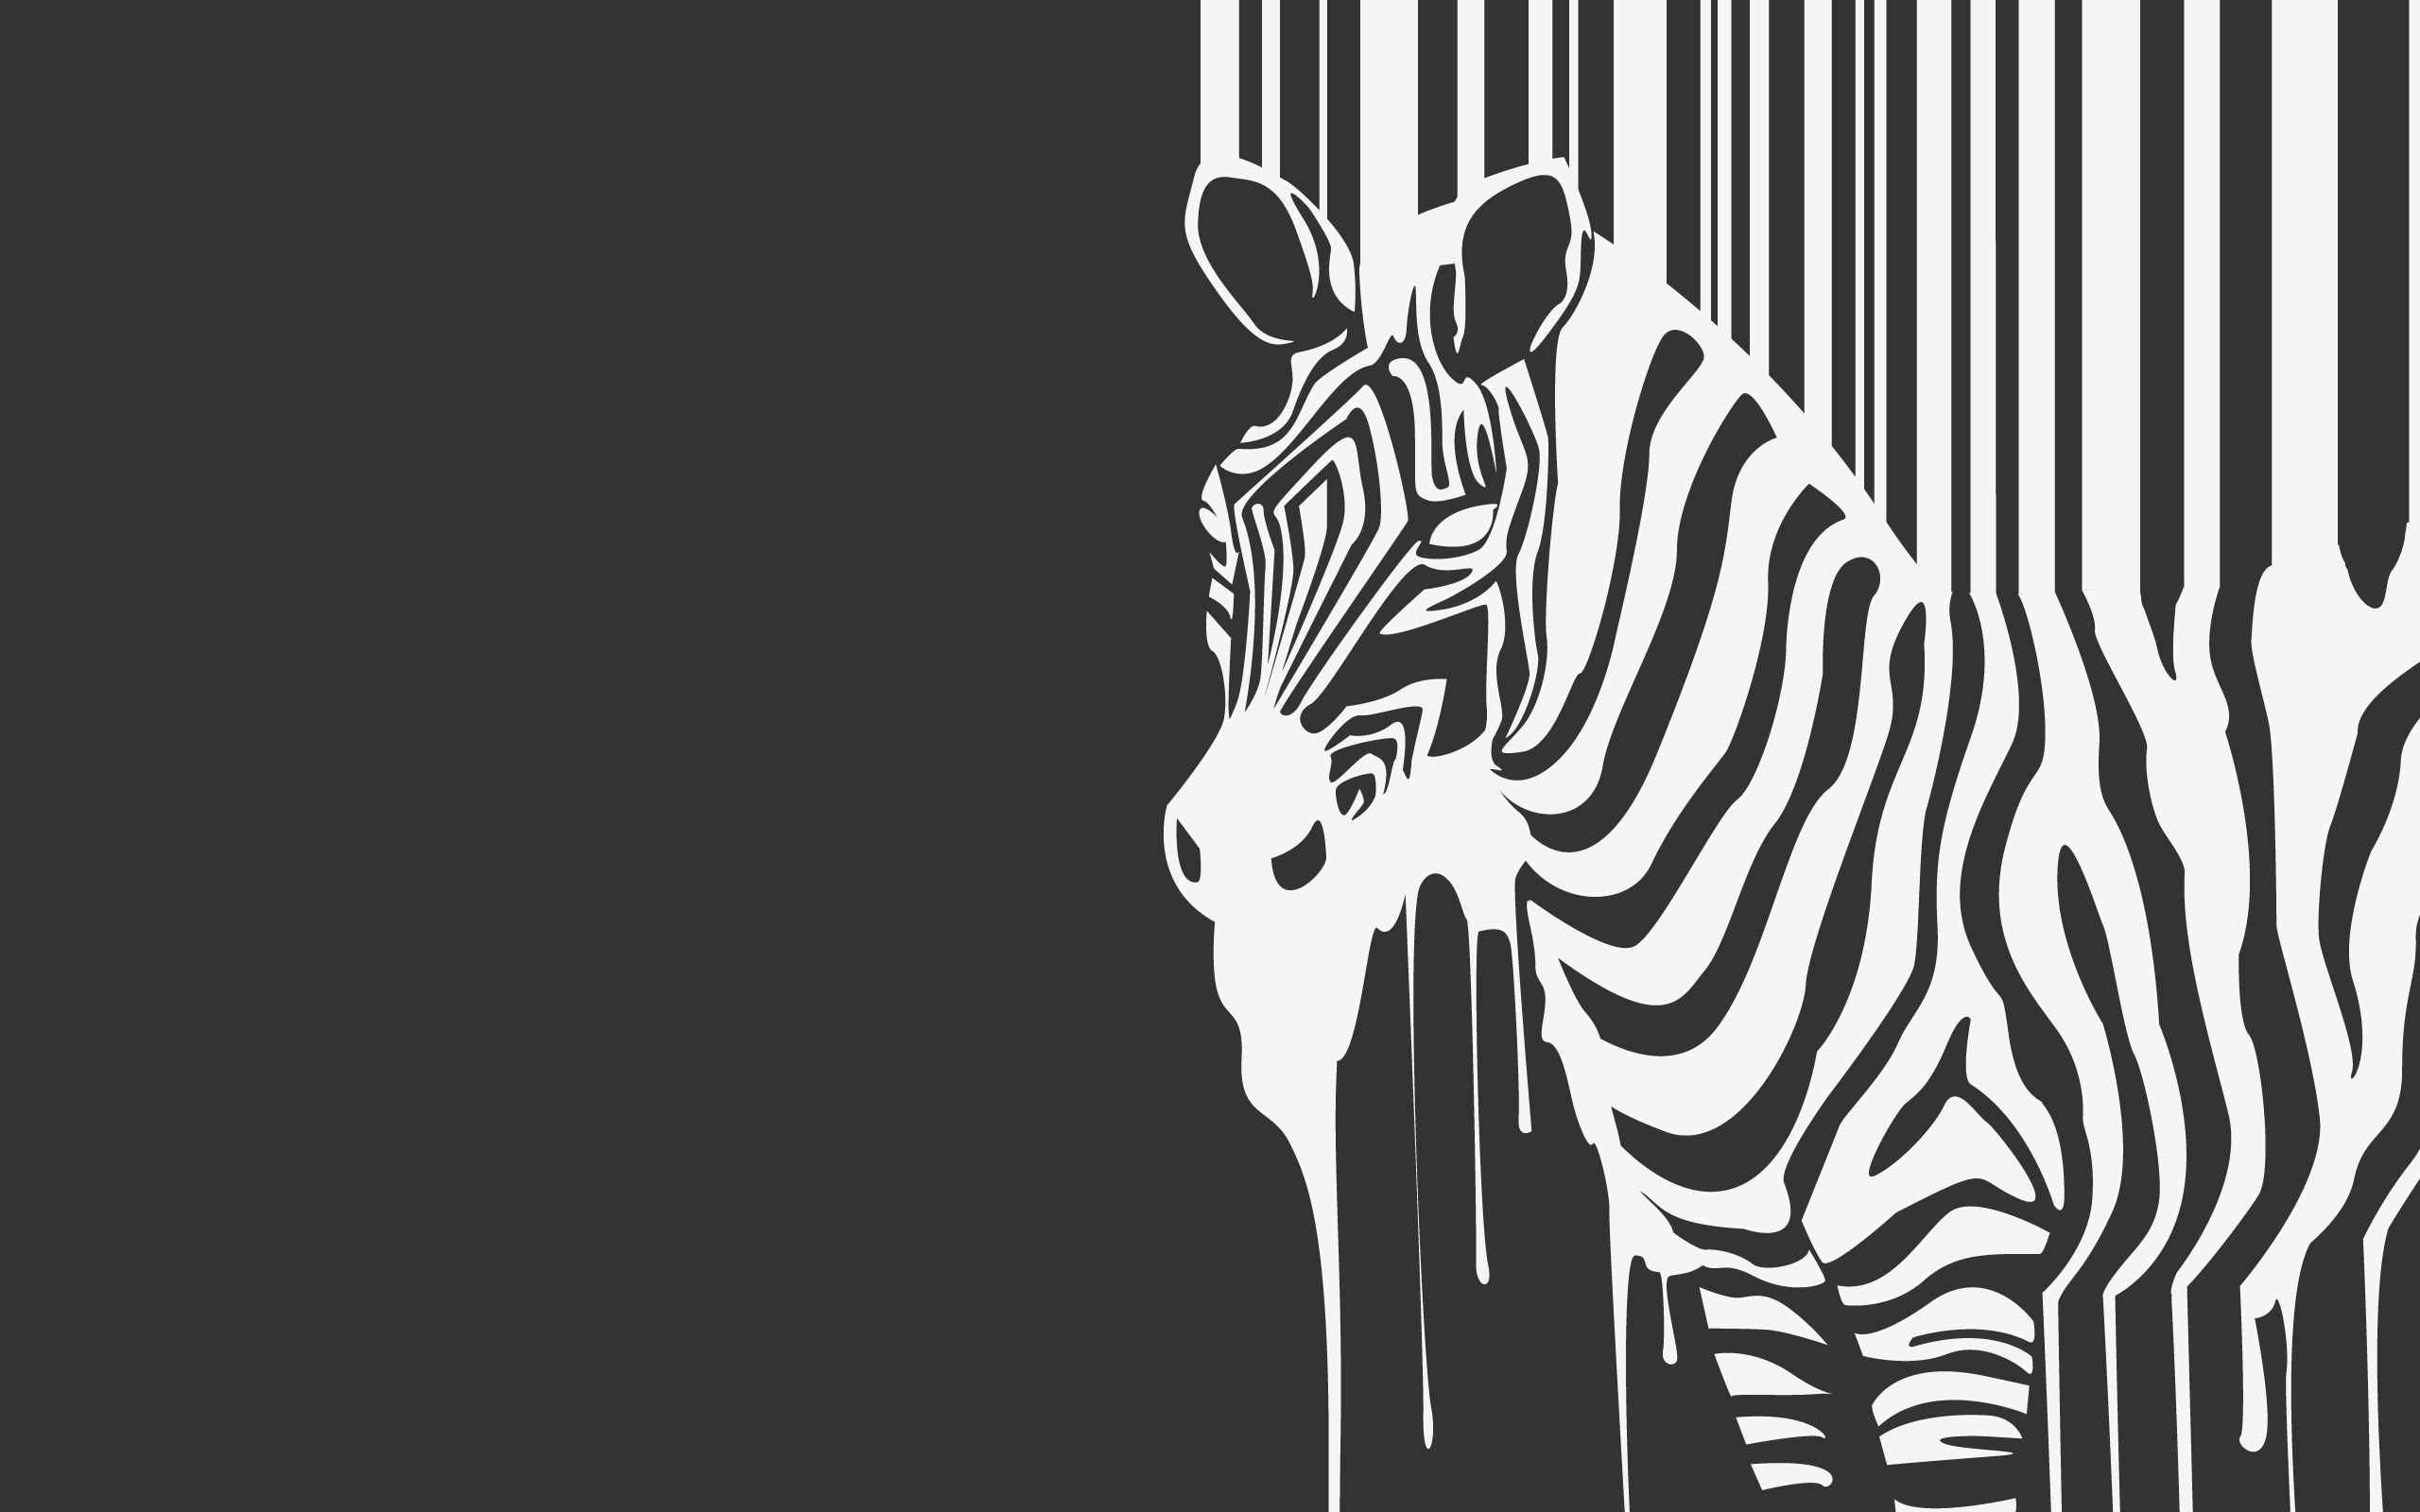 Zebra Wallpaper Zebra Art Zebra Wallpaper Black And White Cartoon